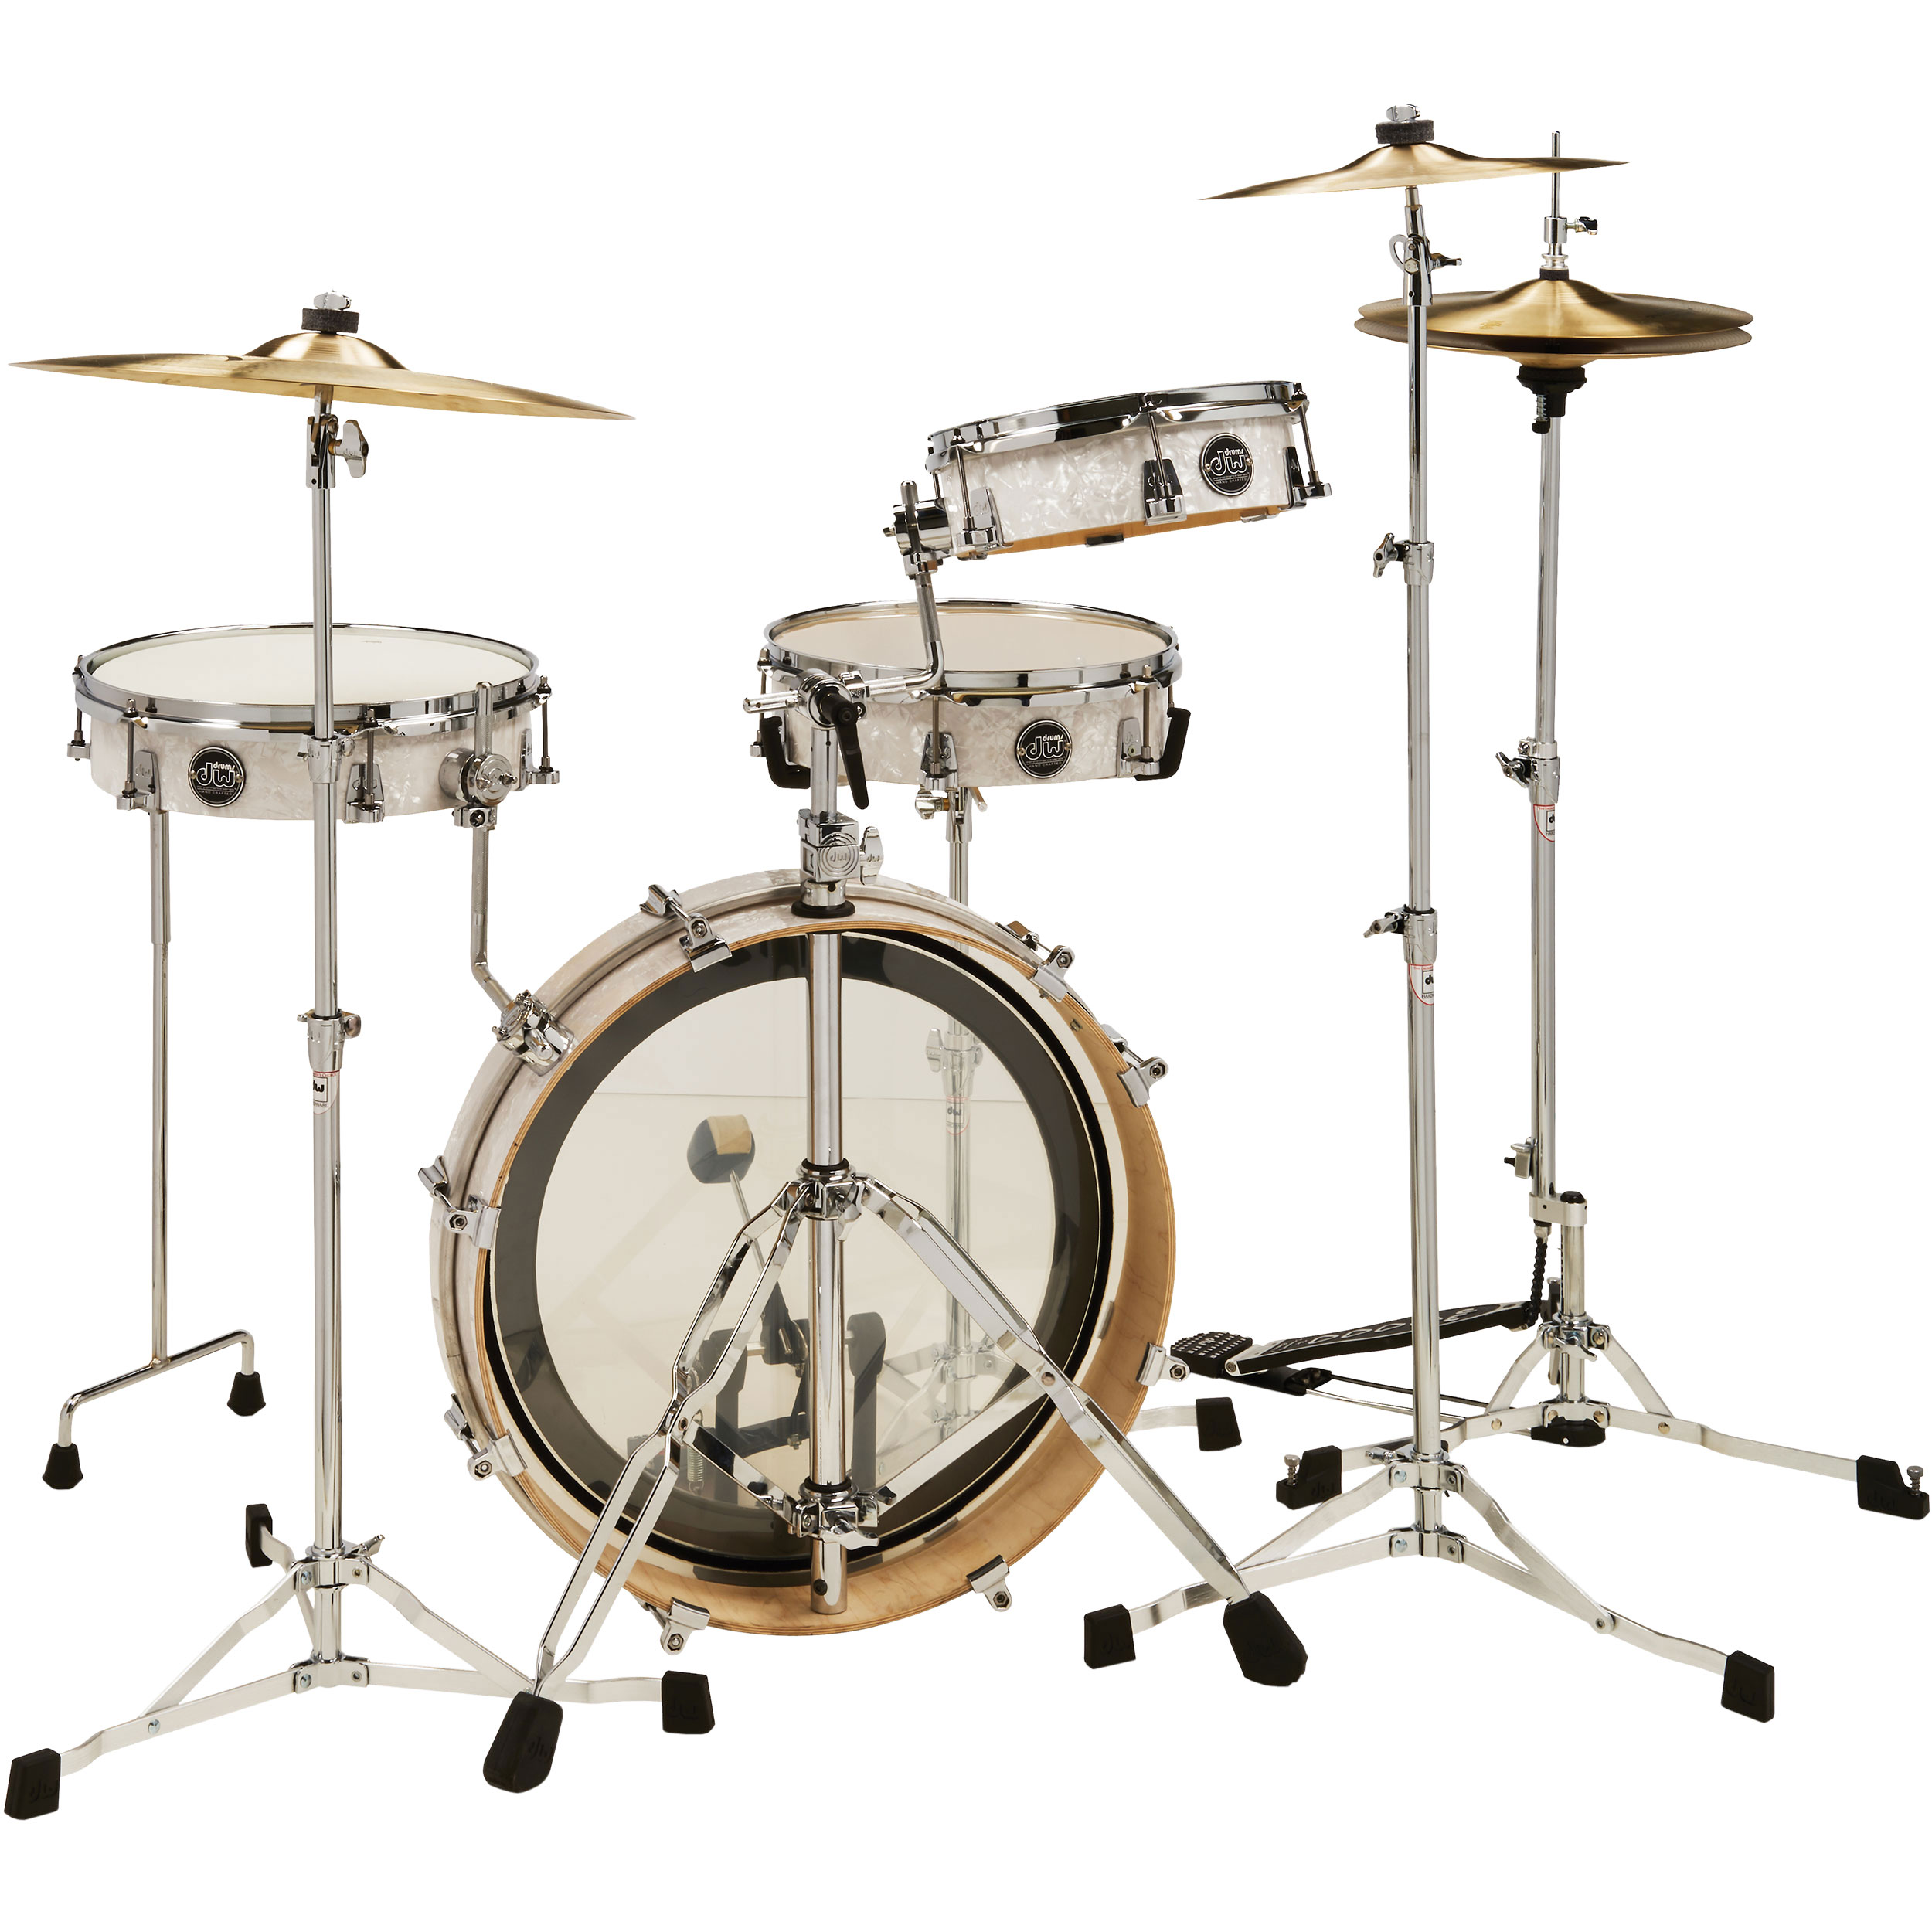 "DW Performance 4-Piece LowPro Travel Drum Set (20"" Bass, 10/13"" Toms, 12"" Snare)"